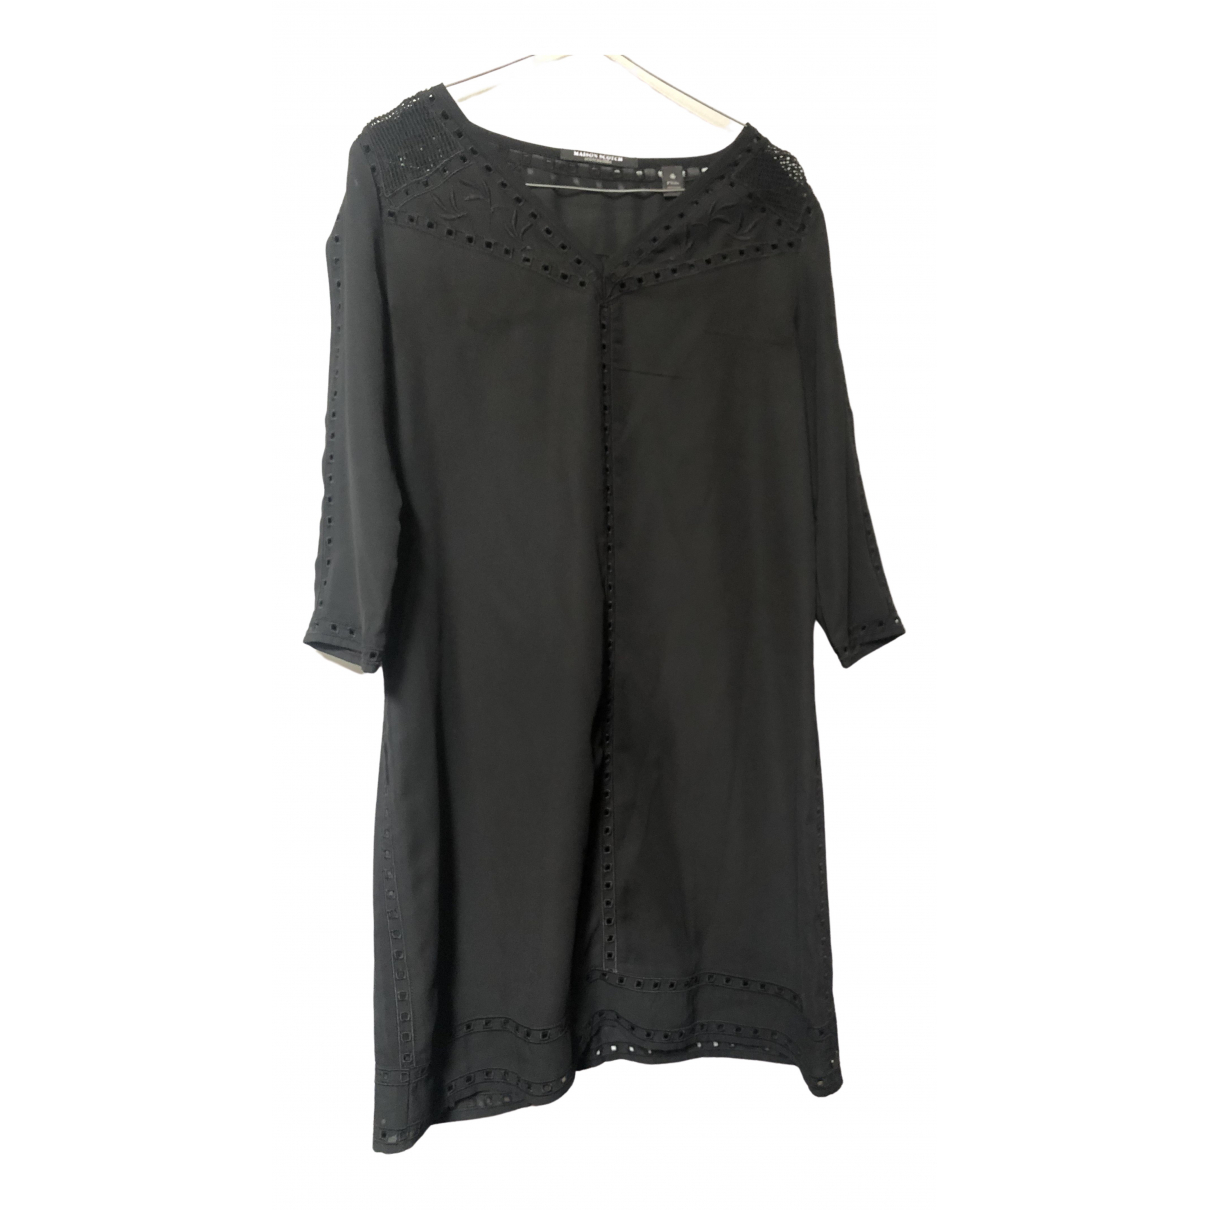 Maison Scotch \N Black dress for Women S International